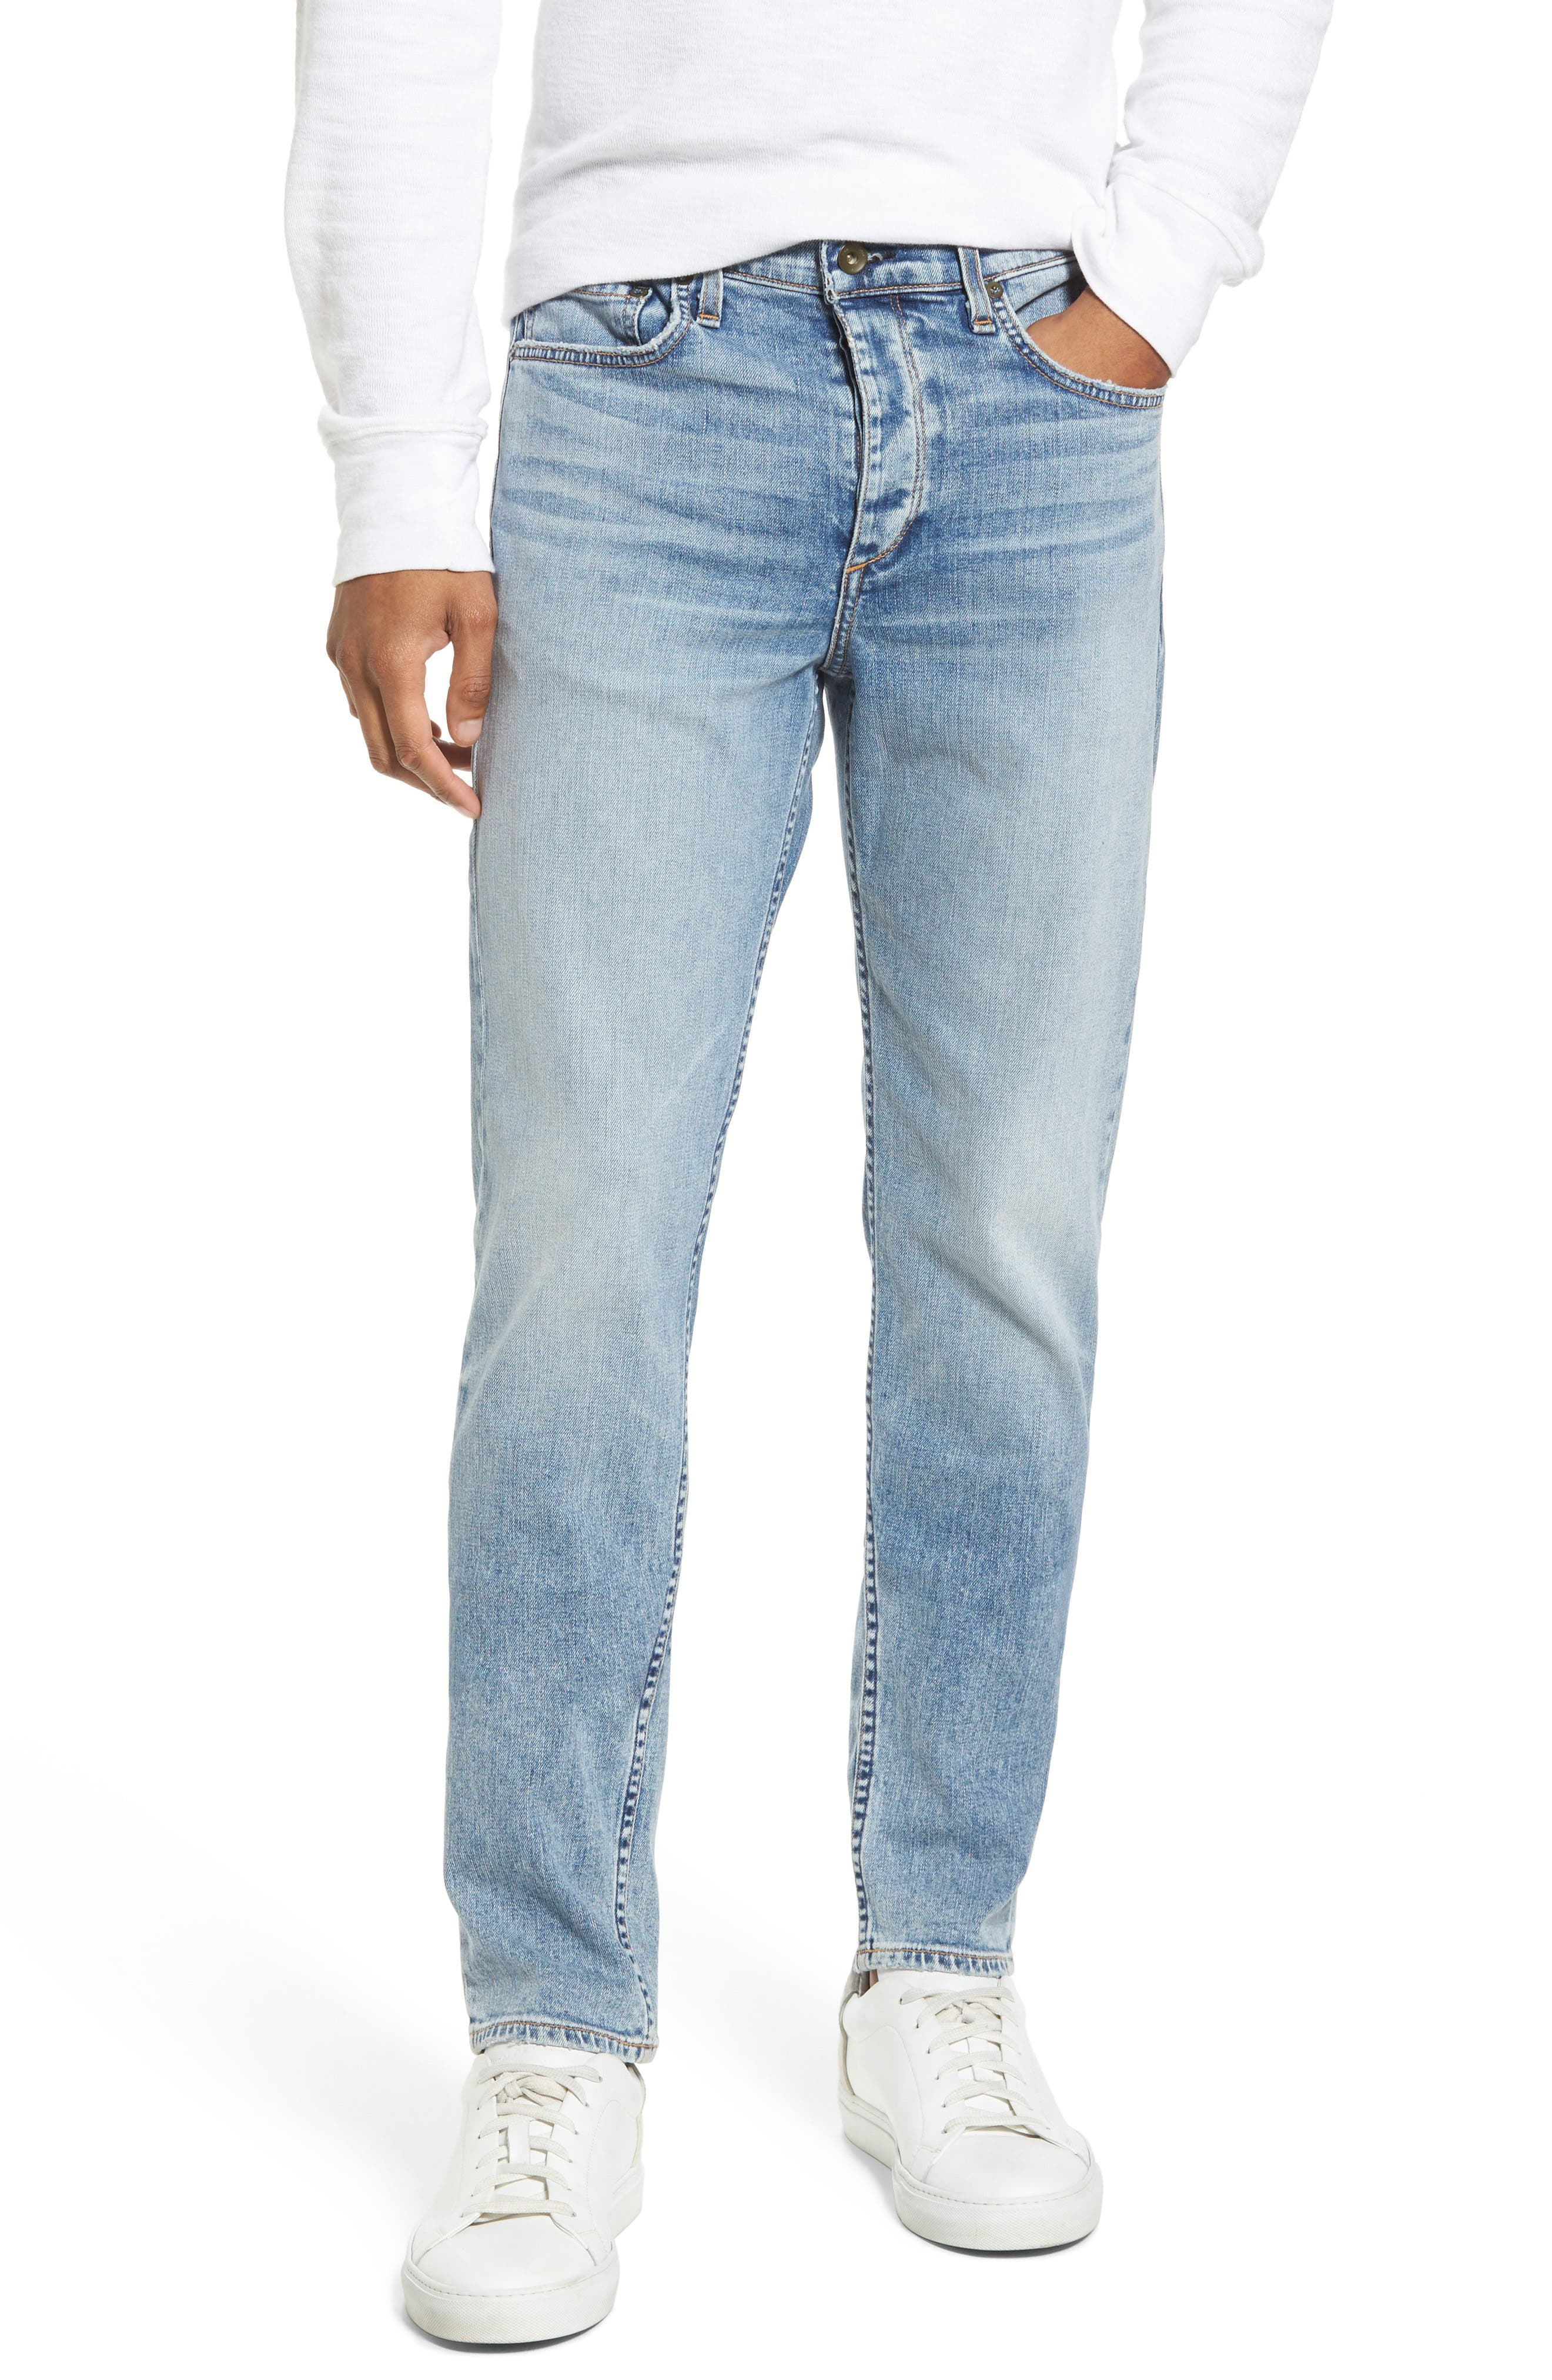 Fit 1 Skinny Fit Jeans,                         Main,                         color, 450